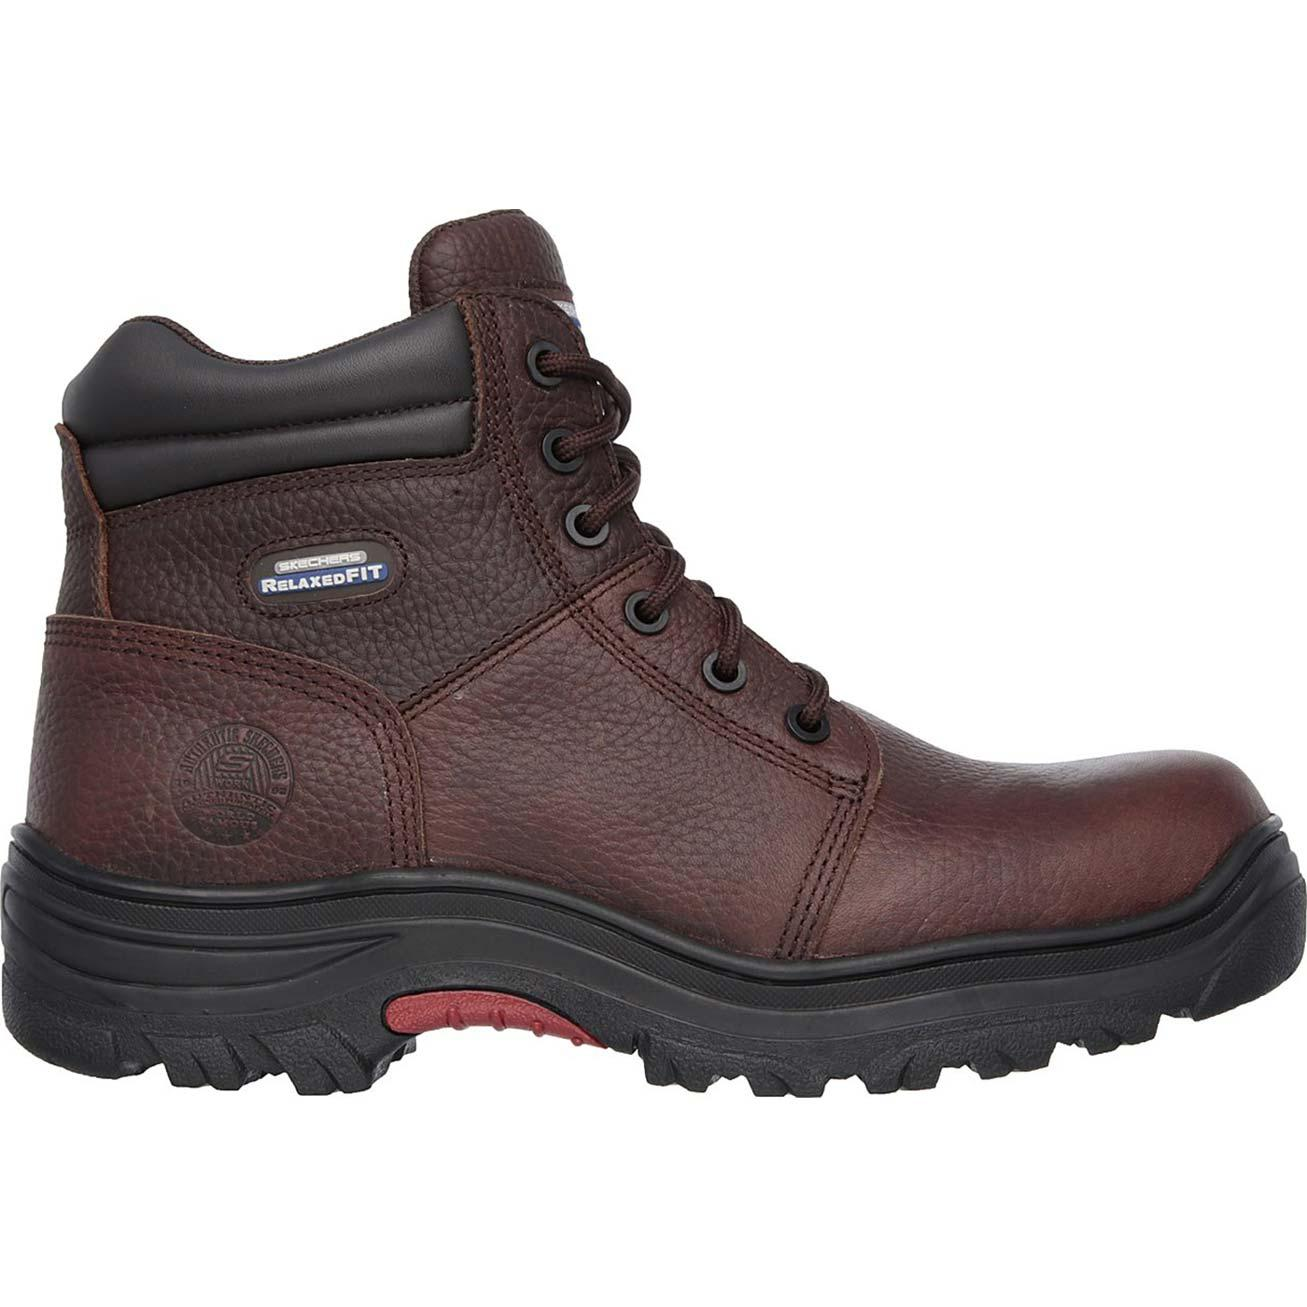 SKECHERS Work Relaxed Fit Burgin Composite Toe Puncture-Resistant ... eb7c0b27a596